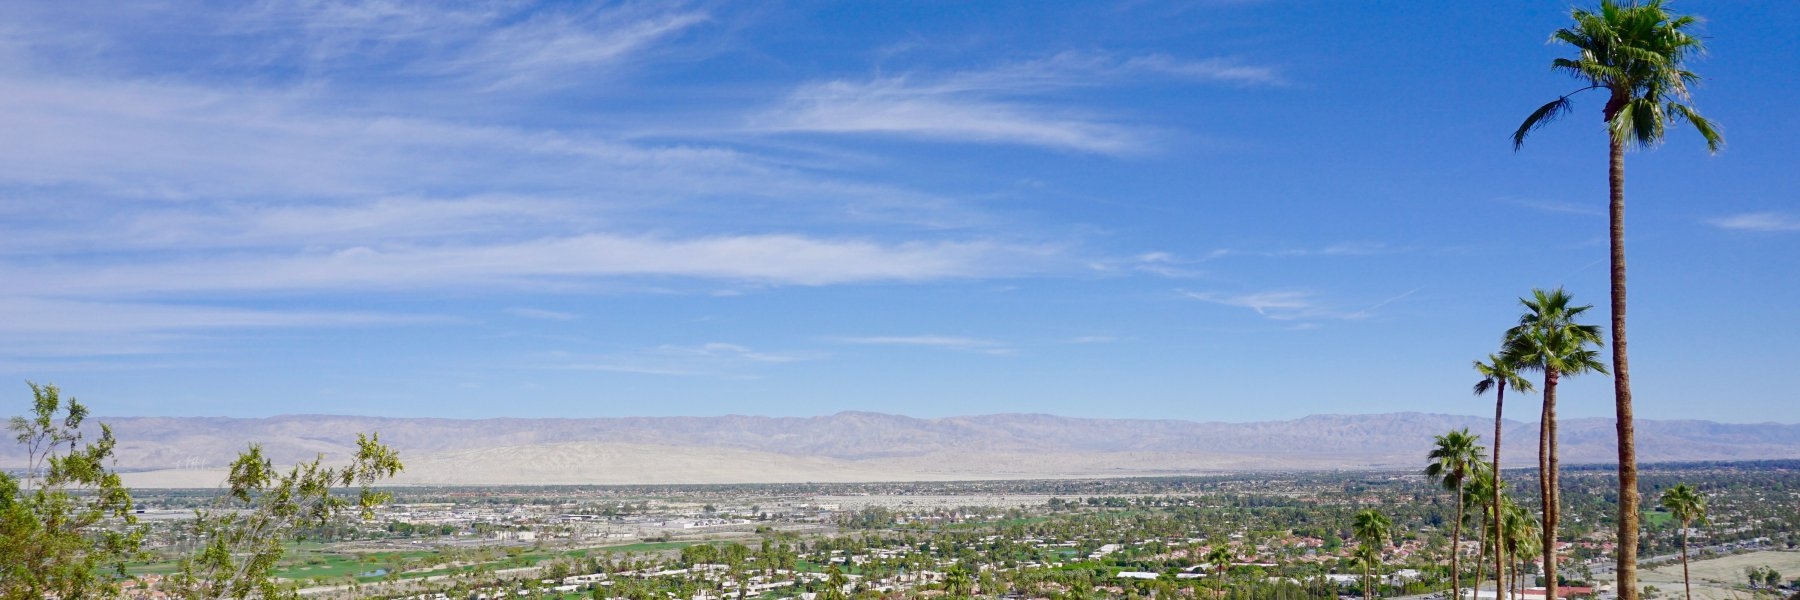 Southridge is a community of homes in Palm Springs California